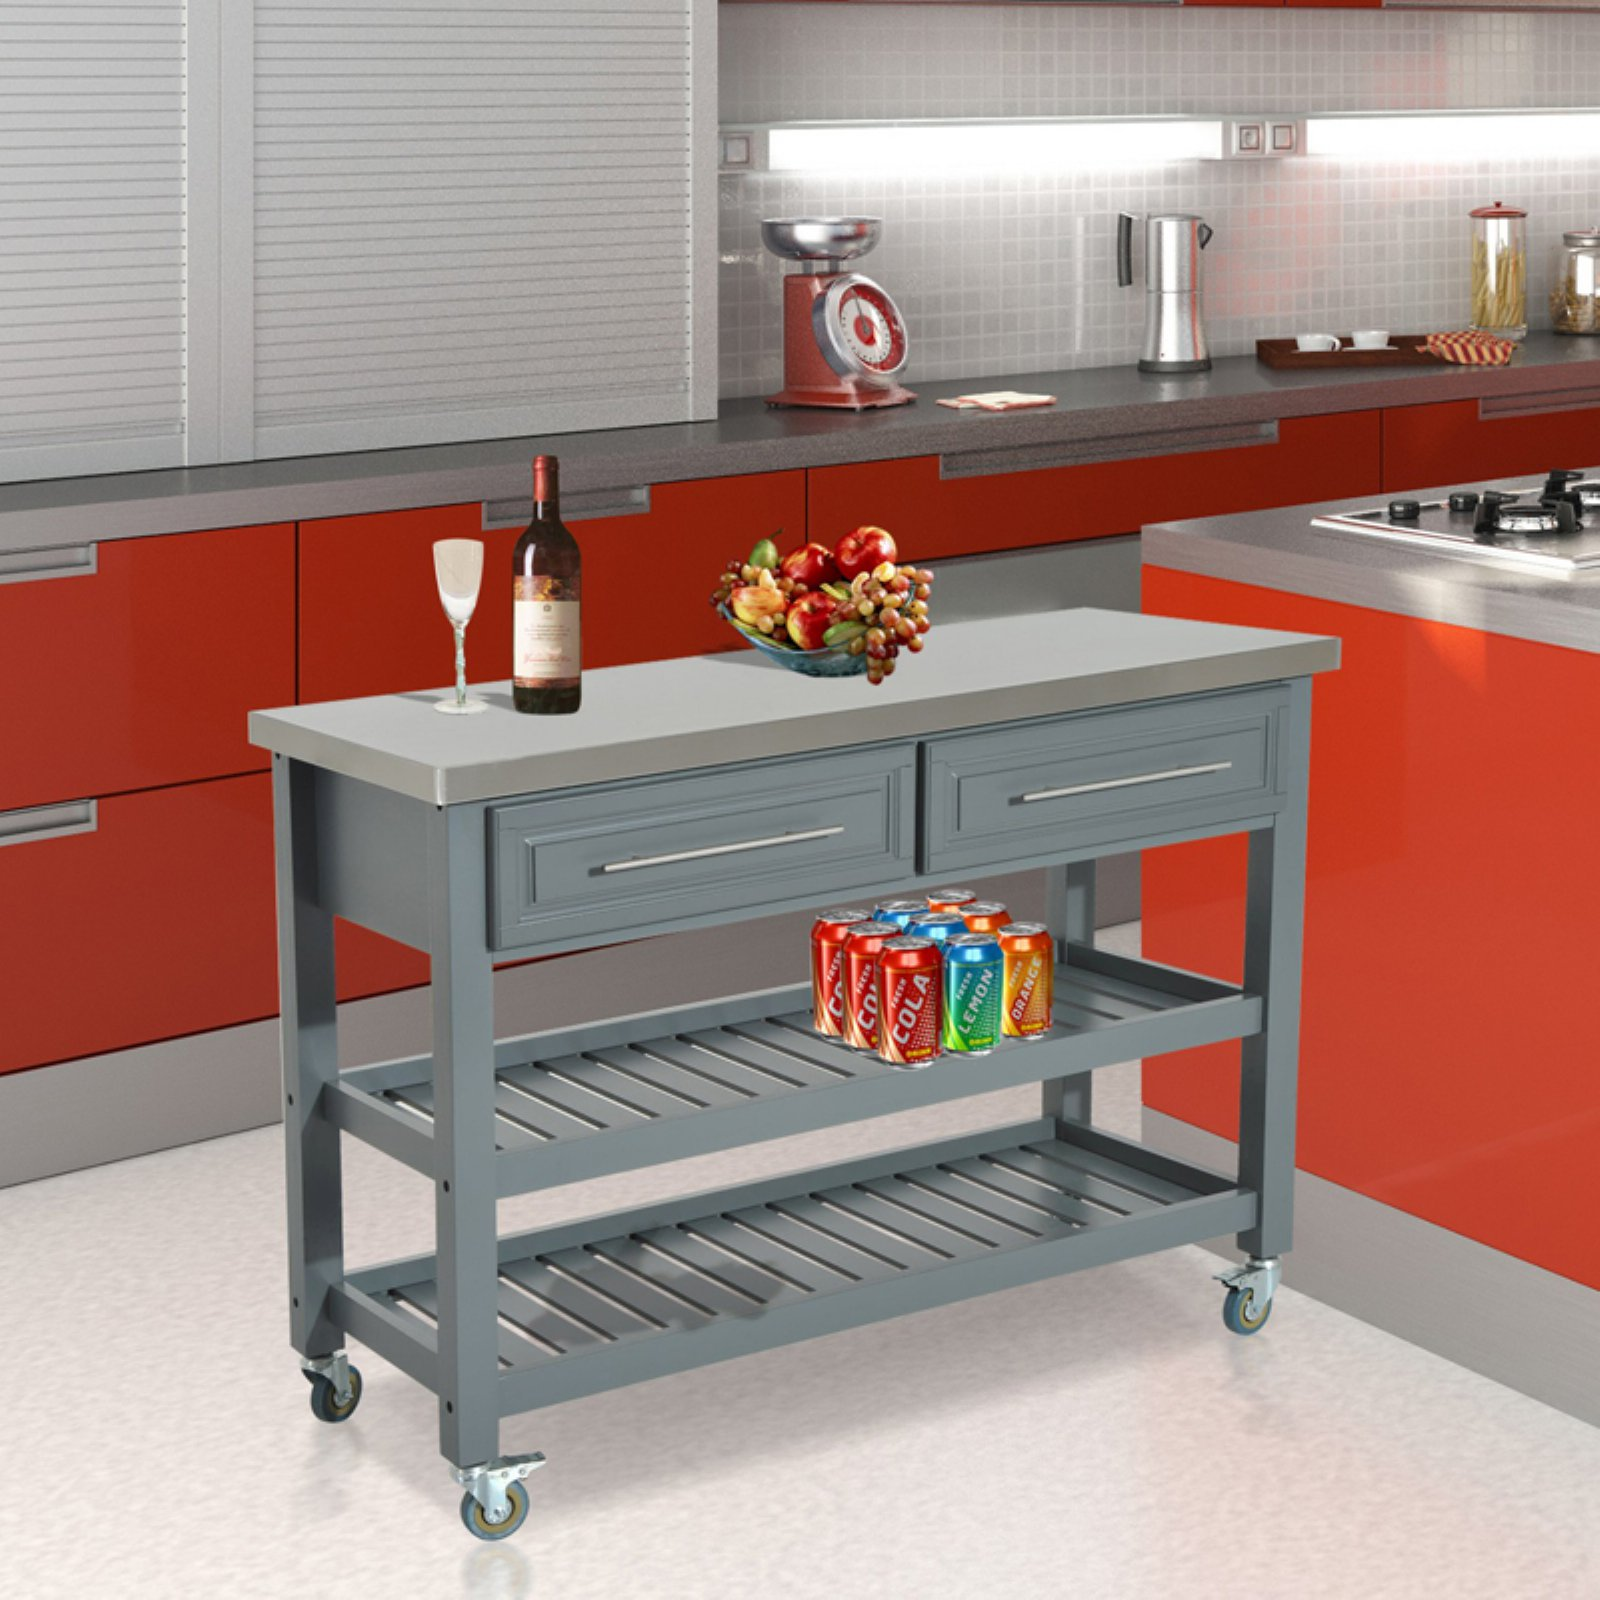 HomCom Country Kitchen Stainless Steel Storage Cart